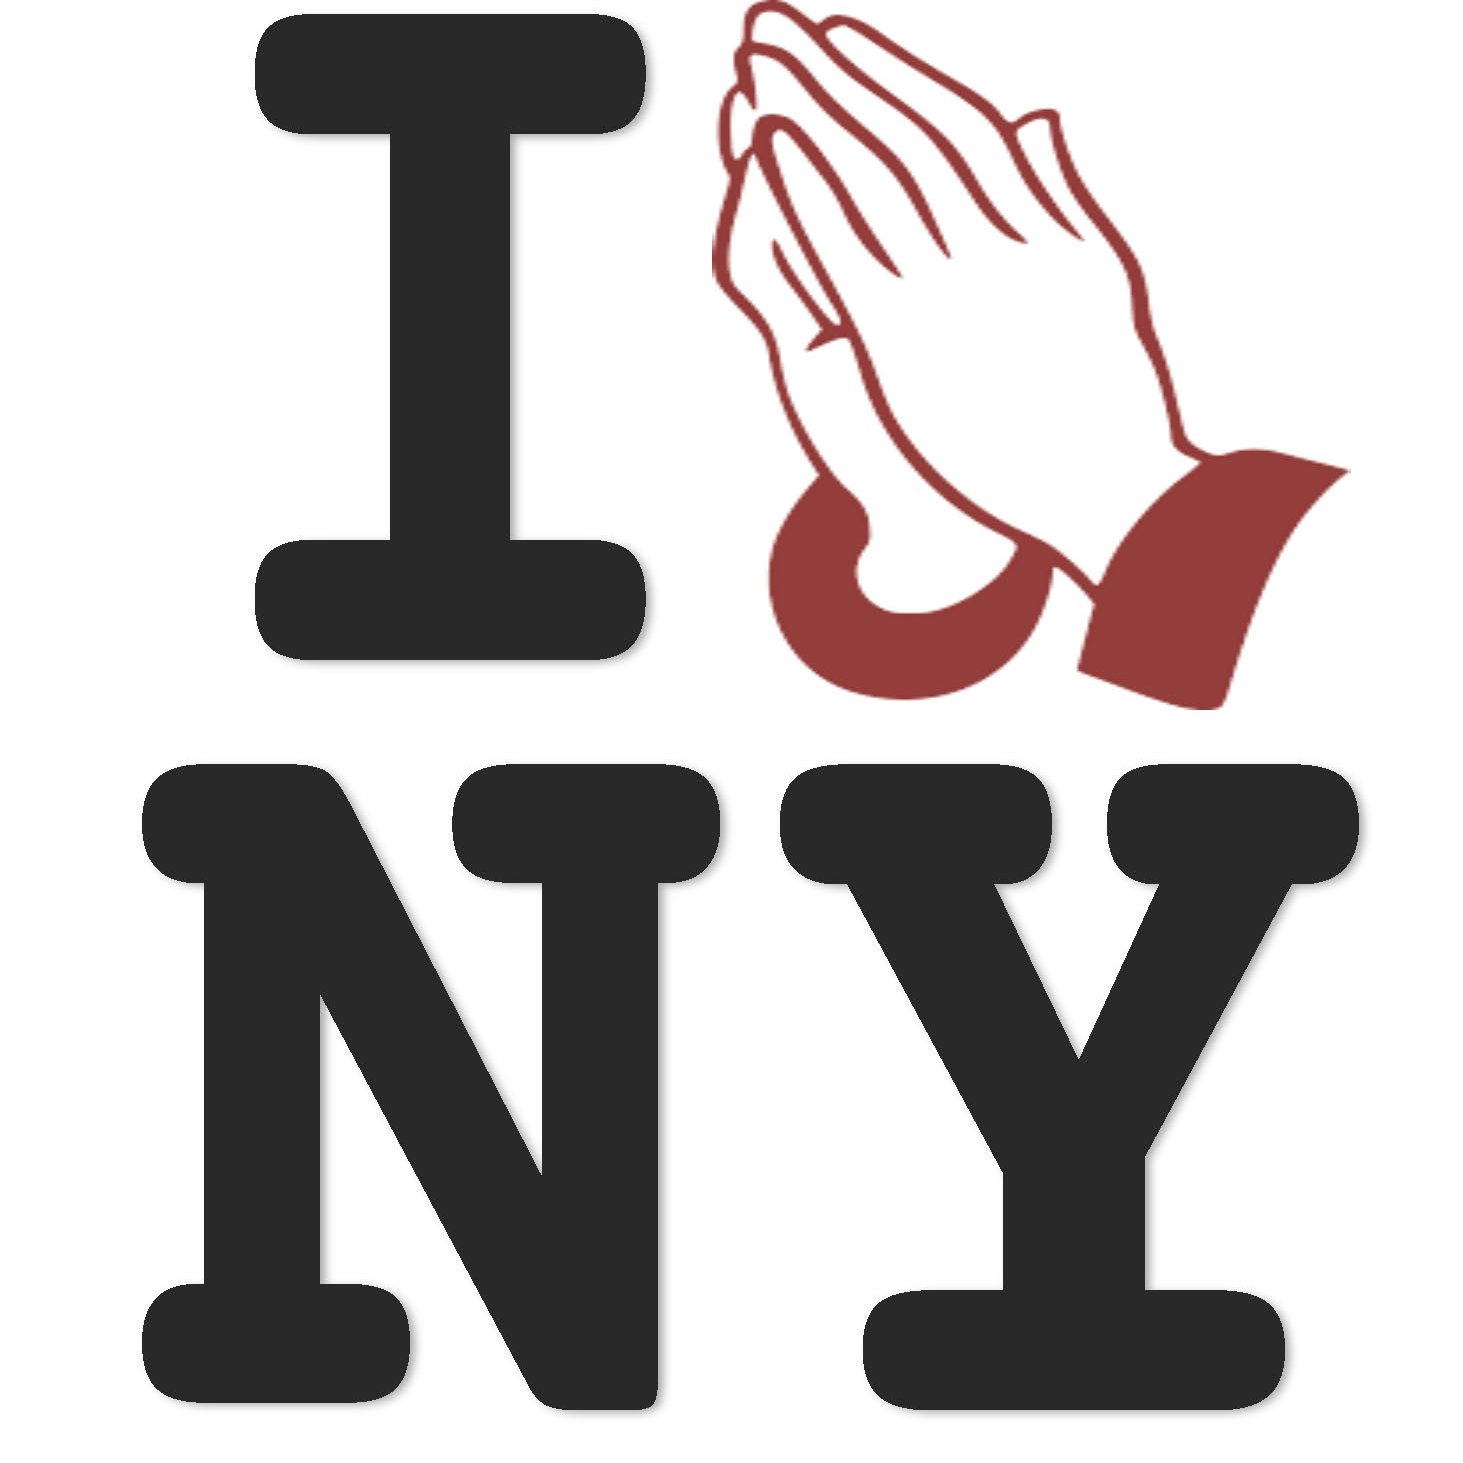 Praying clipart fervent. I pray ny on